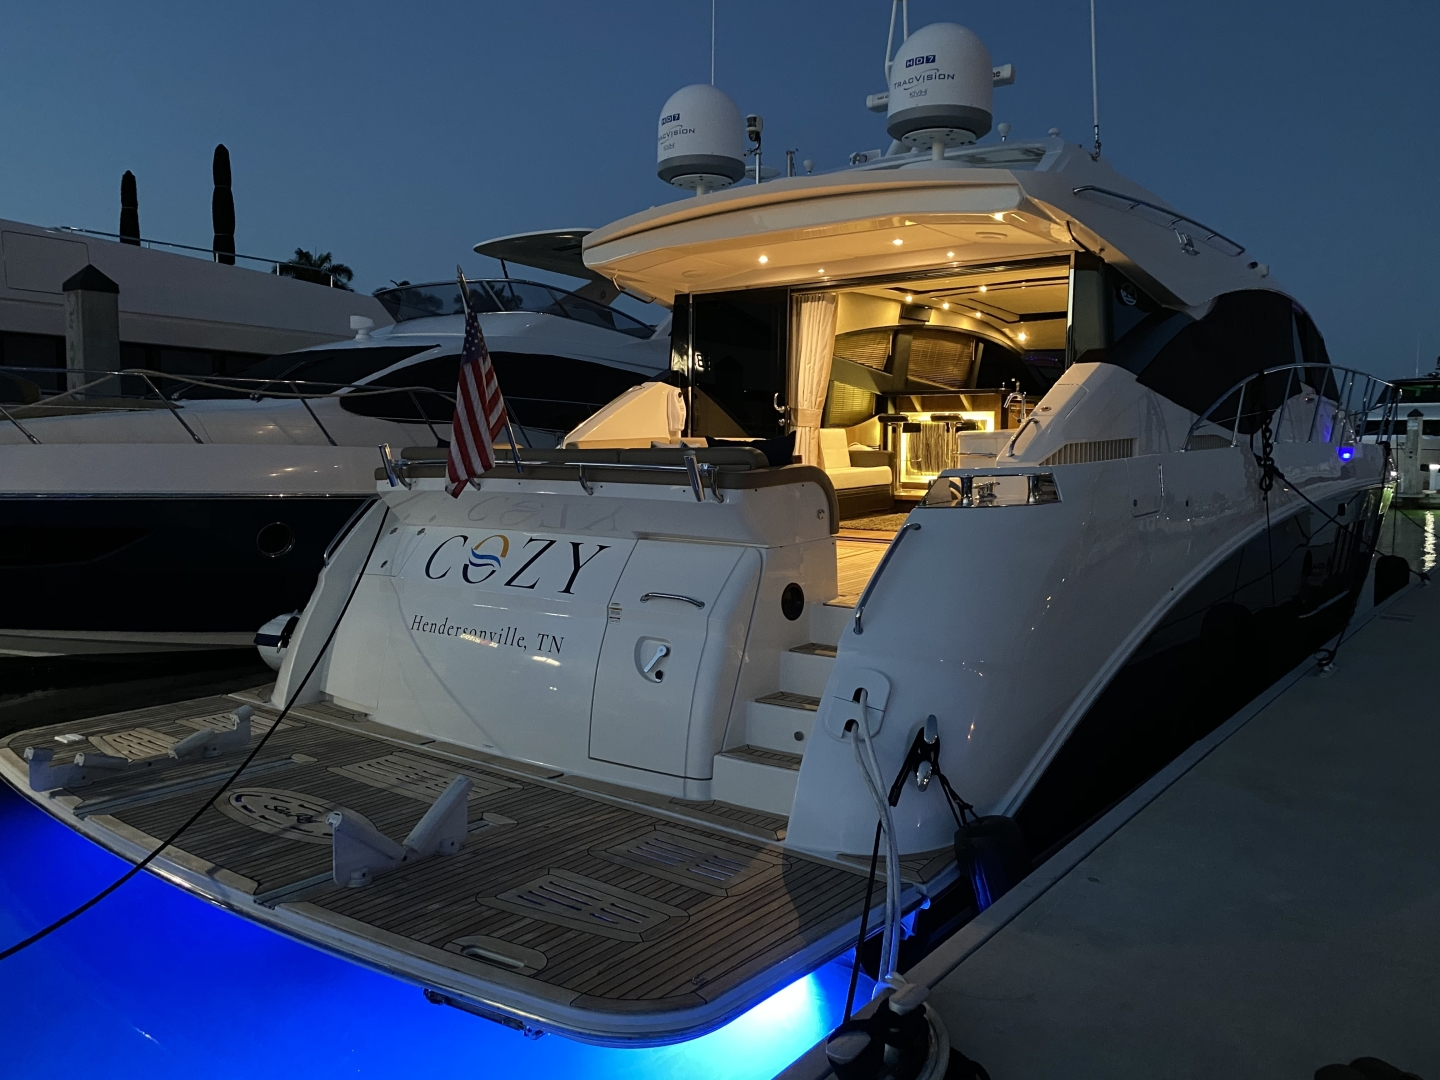 Sea Ray-L650 Express 2016-Cozy Fort Lauderdale-Florida-United States-2016 Sea Ray L650 Cozy   Night View-1372407 | Thumbnail